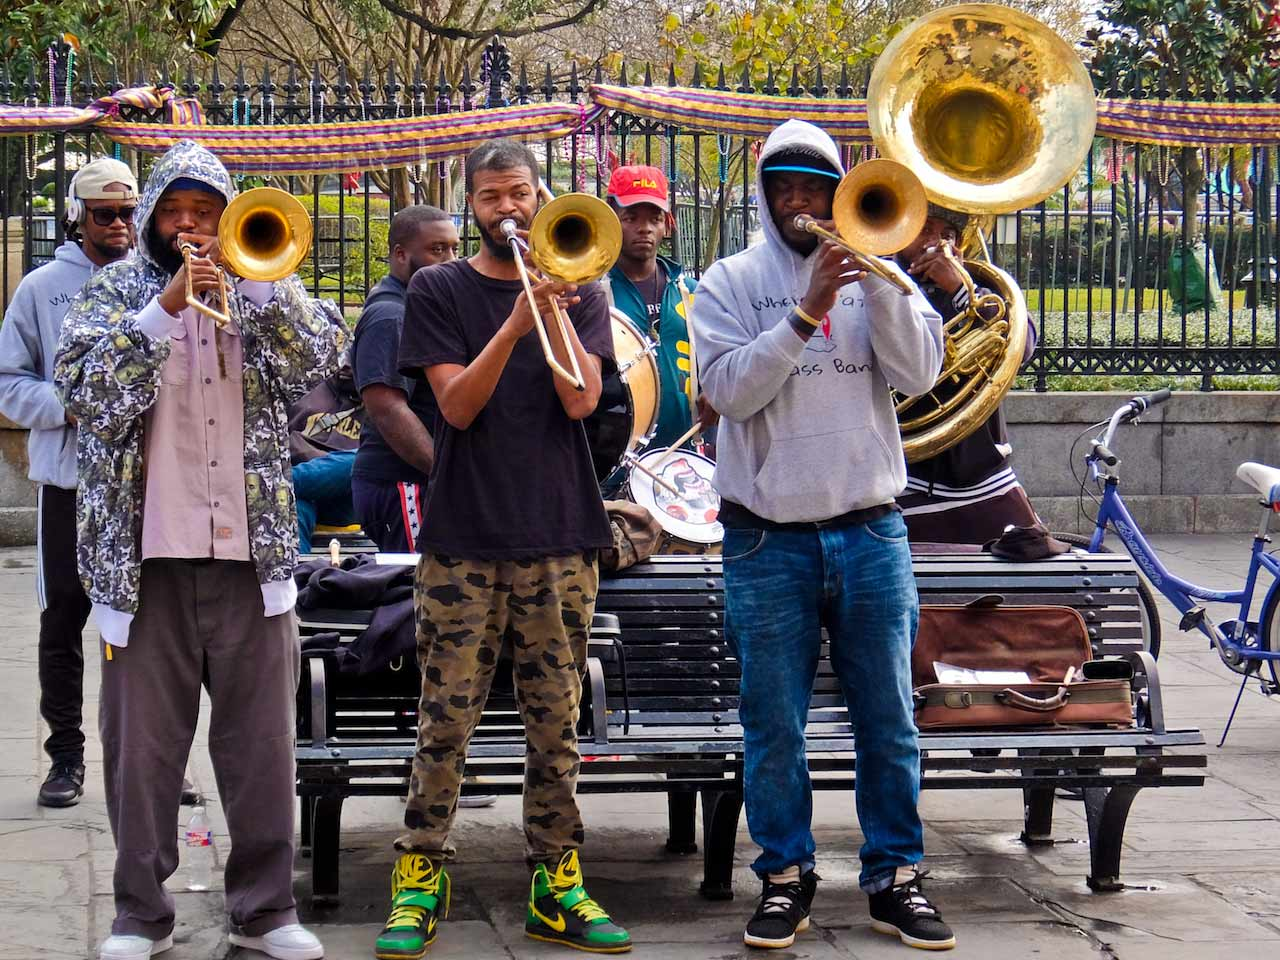 Brass band playing at Jackson Square, New Orleans